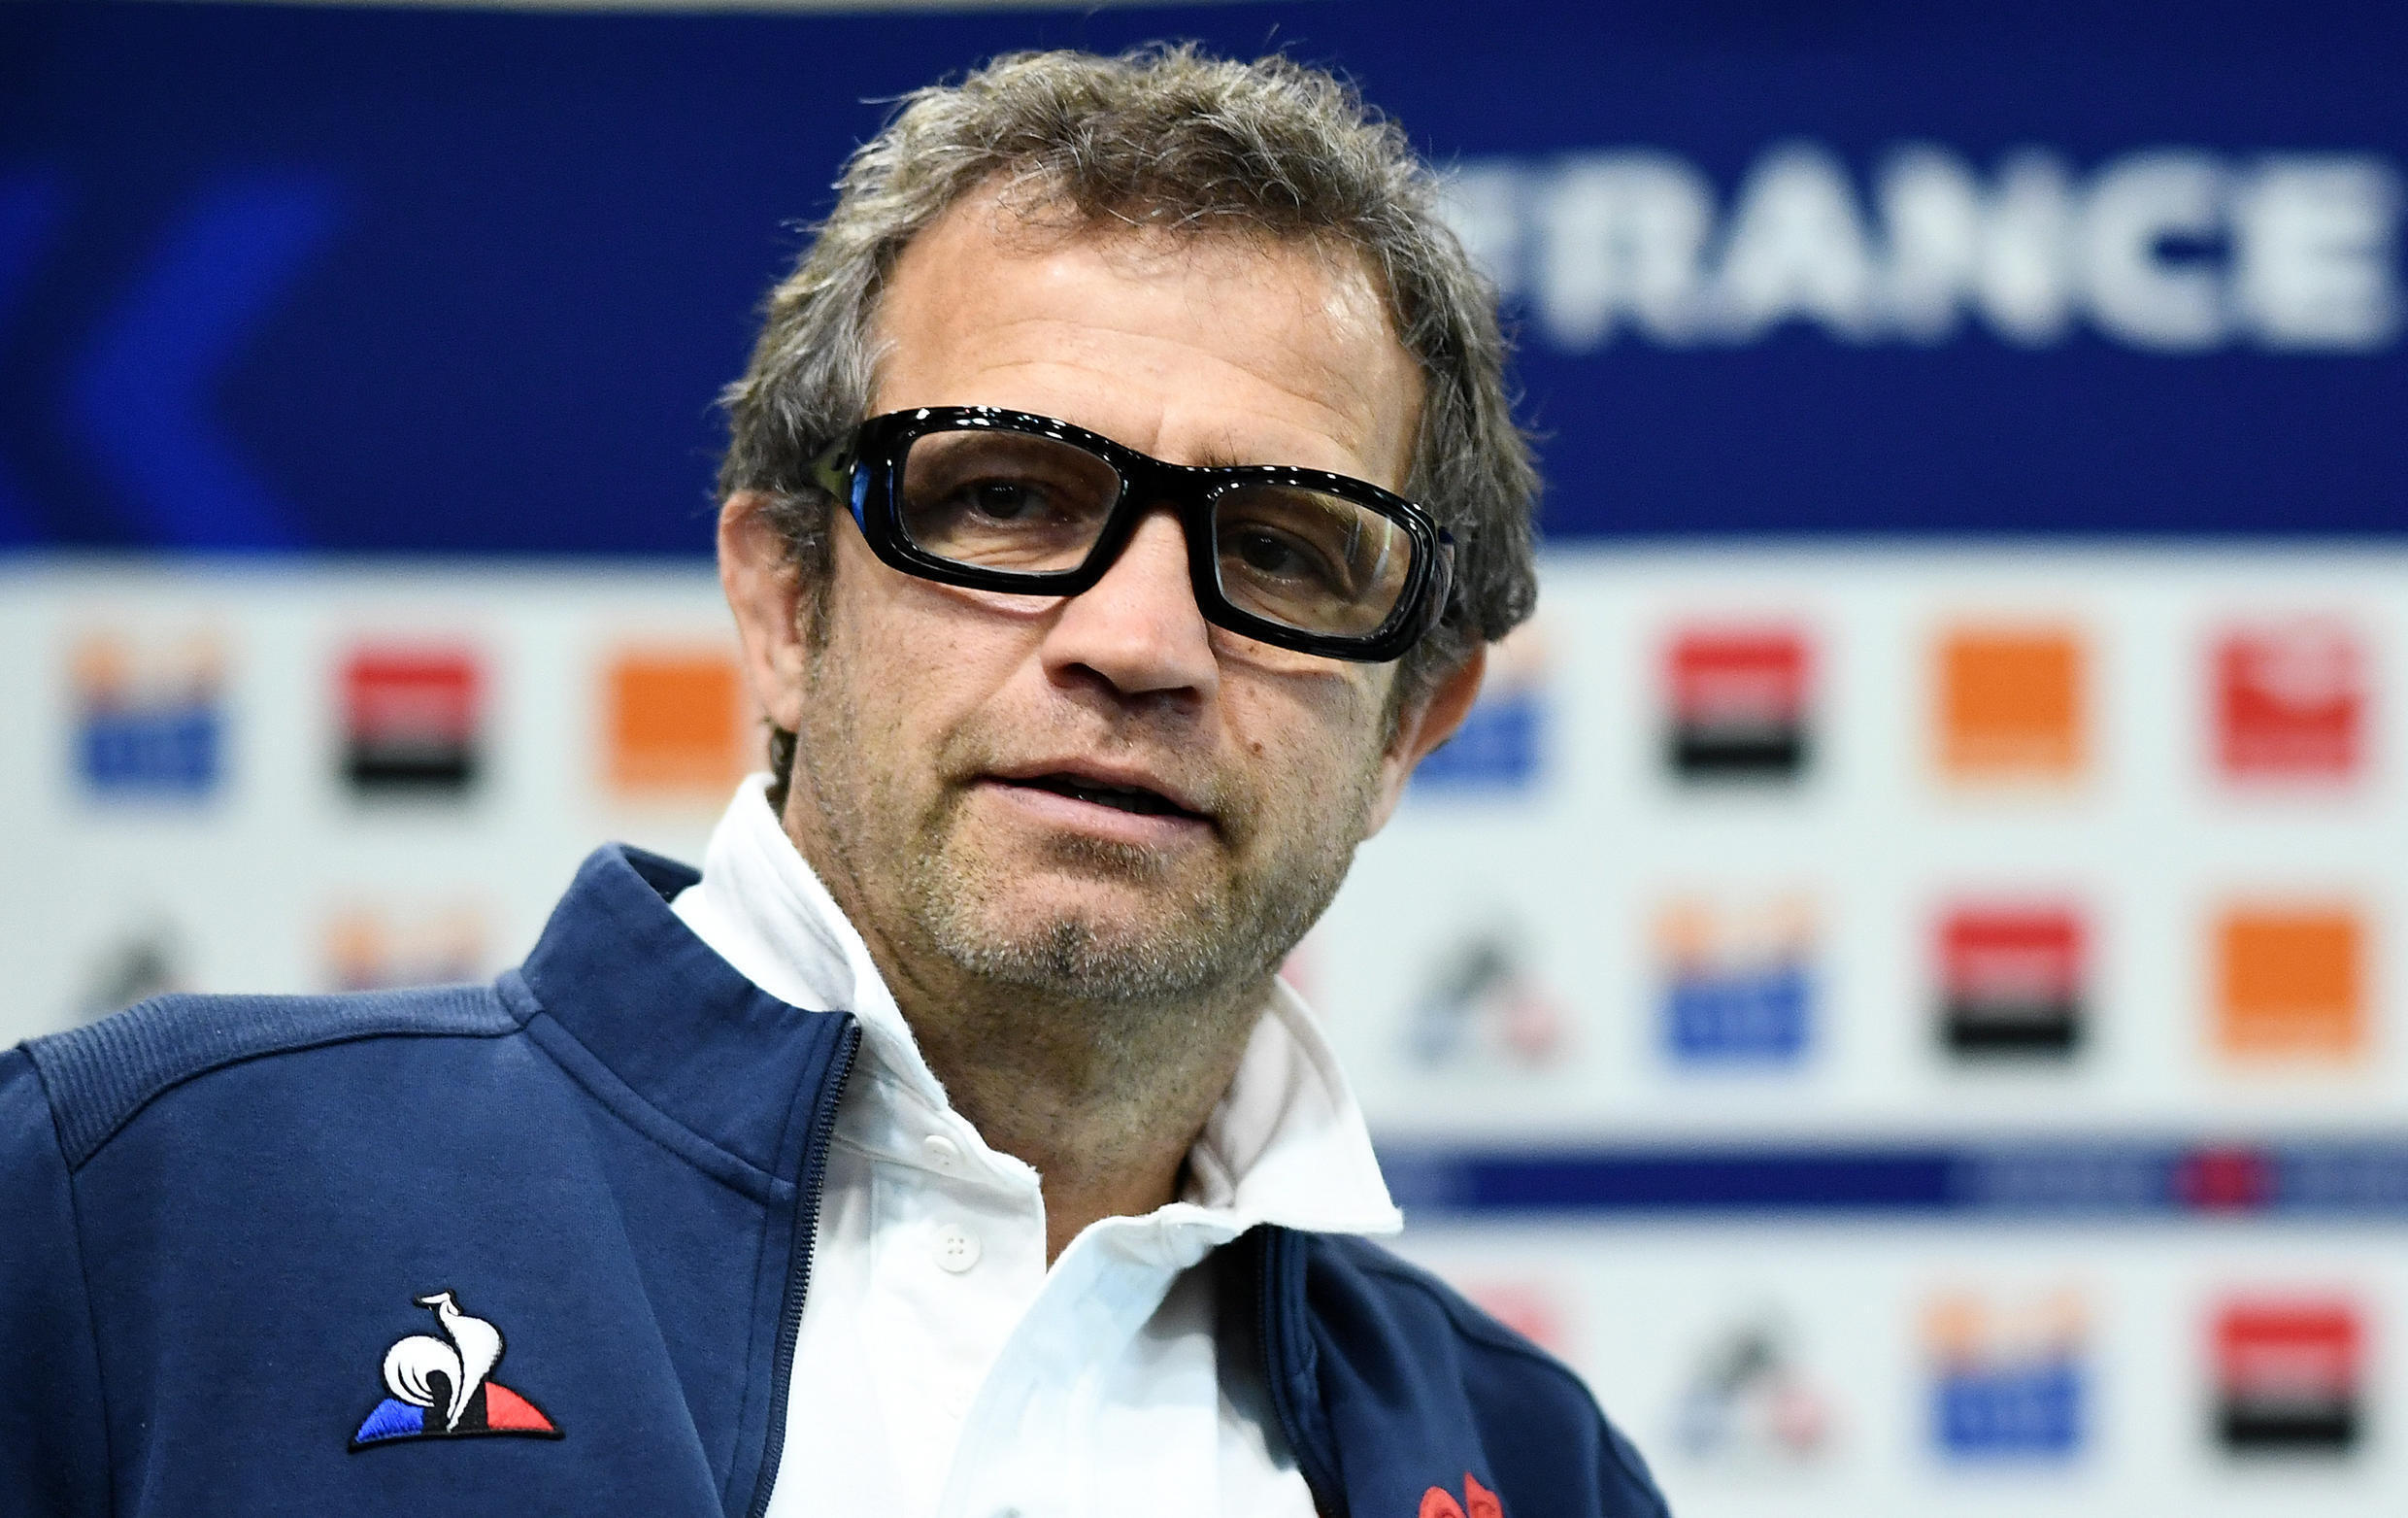 Fabien Galthié took over as France head coach after the 2019 rugby World Cup.